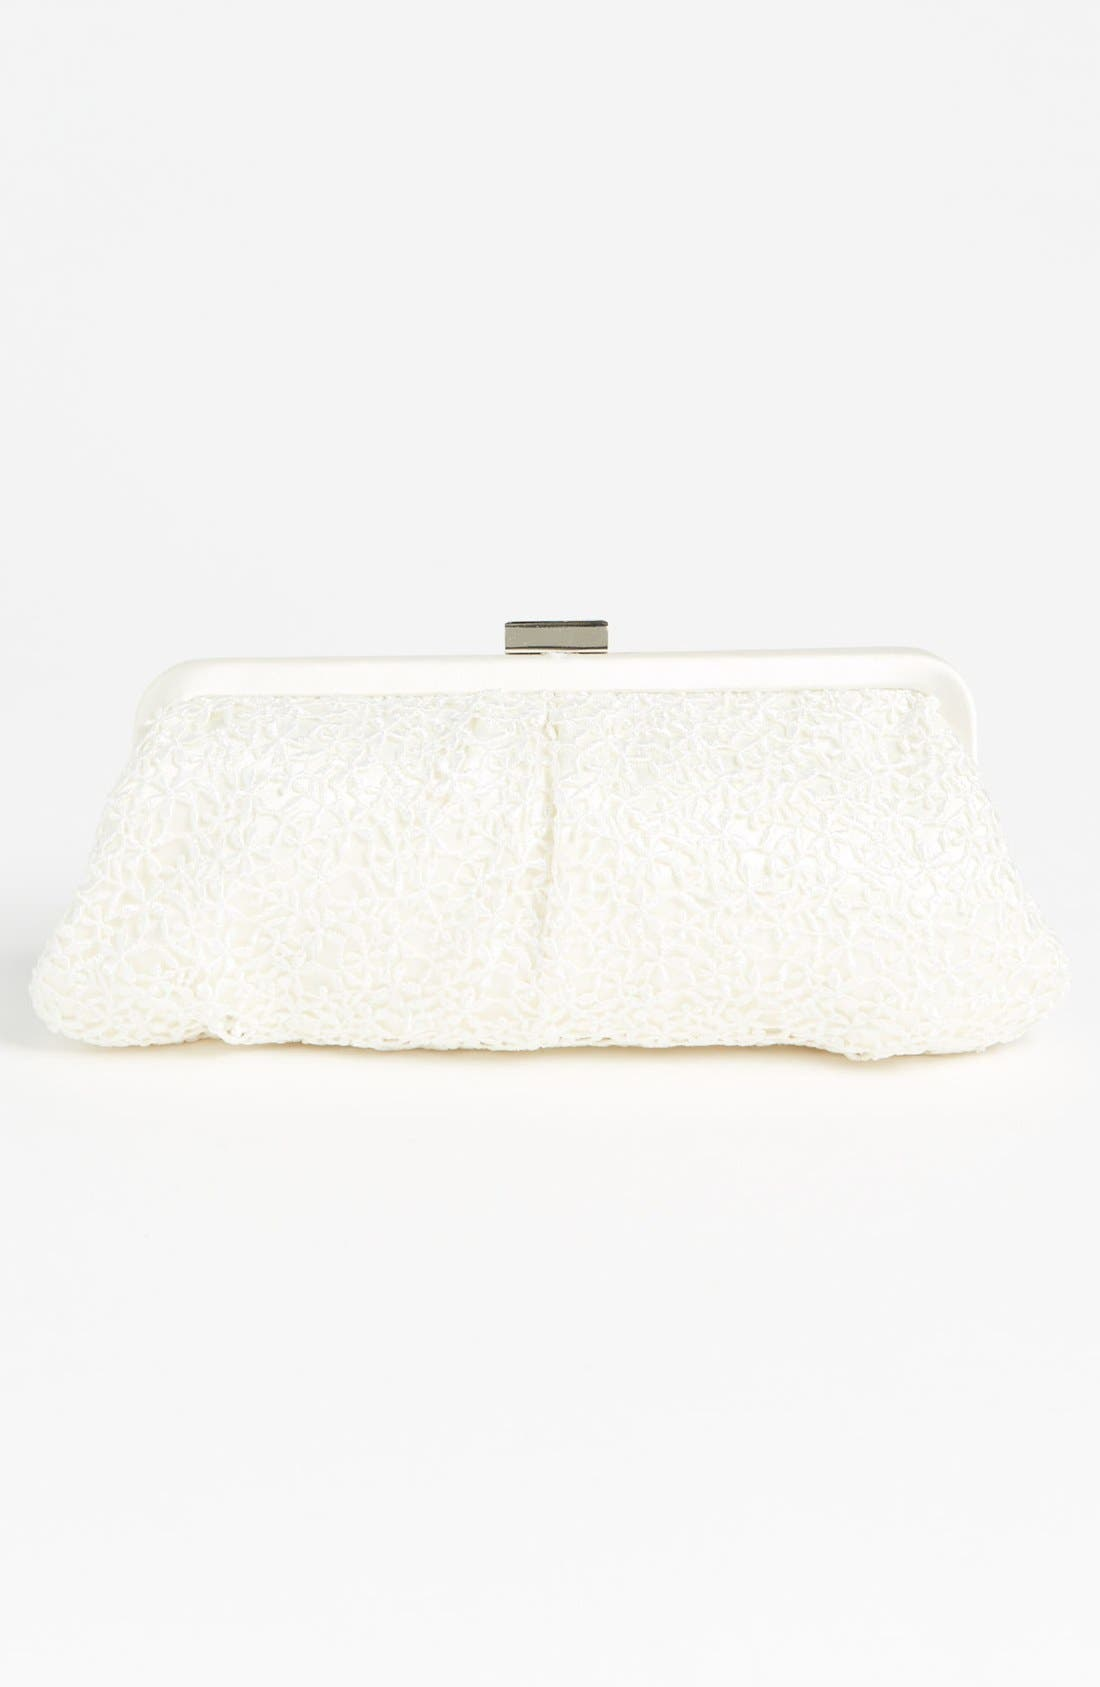 'Crochet Floral' Clutch,                             Alternate thumbnail 3, color,                             108